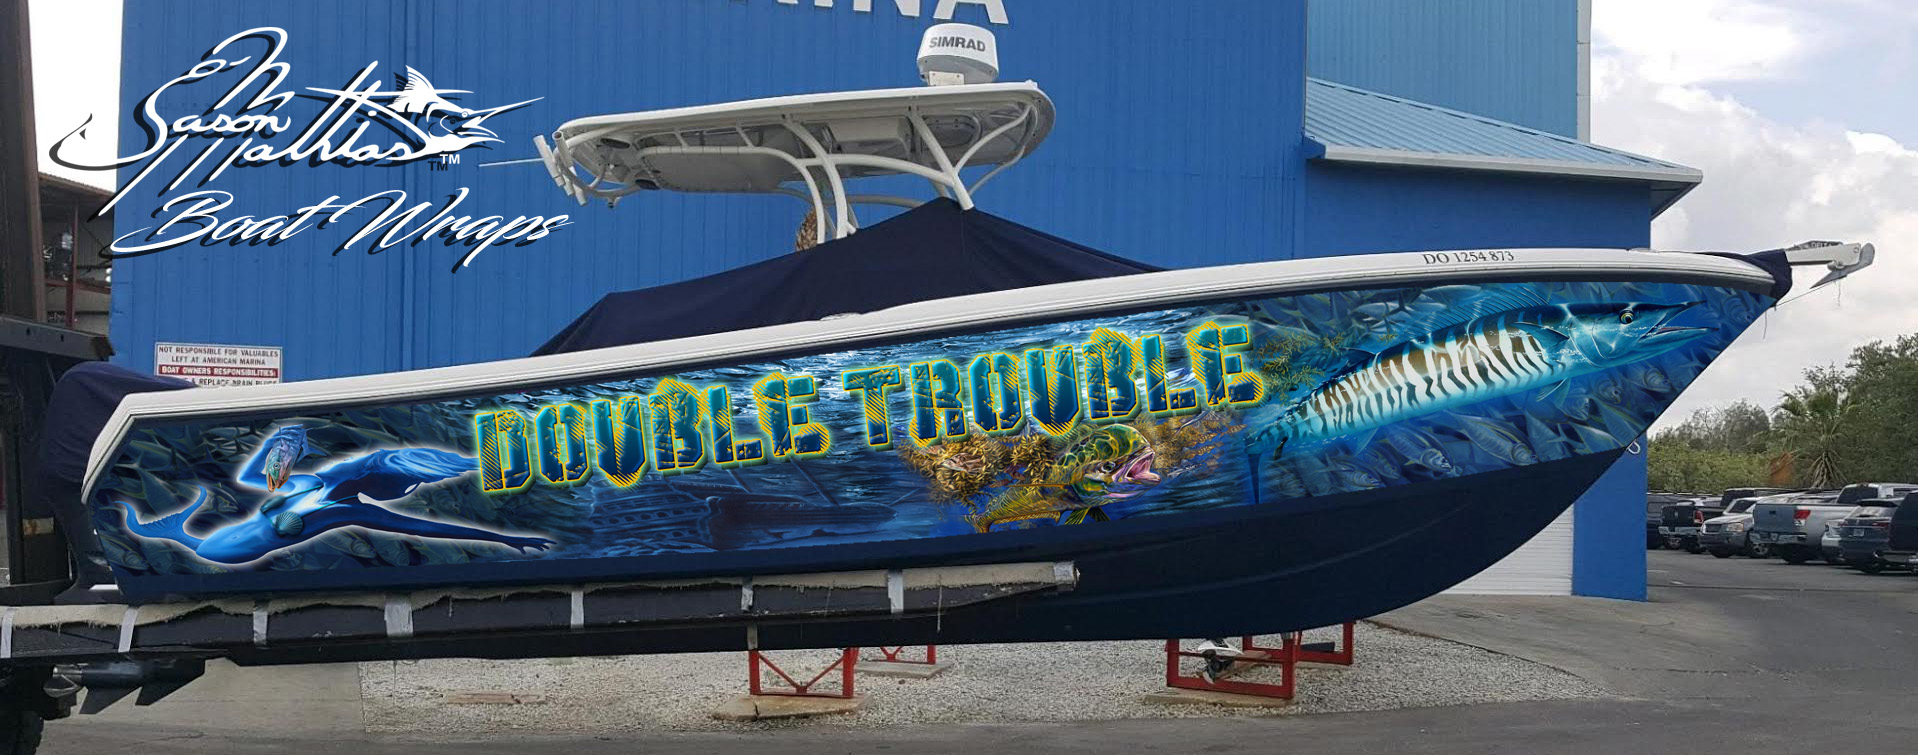 boat-wraps-awesome-the-best-custom-designs-mermain-pirate-ship-wreck-marlin-gamefish-jason-mathias-art.jpg